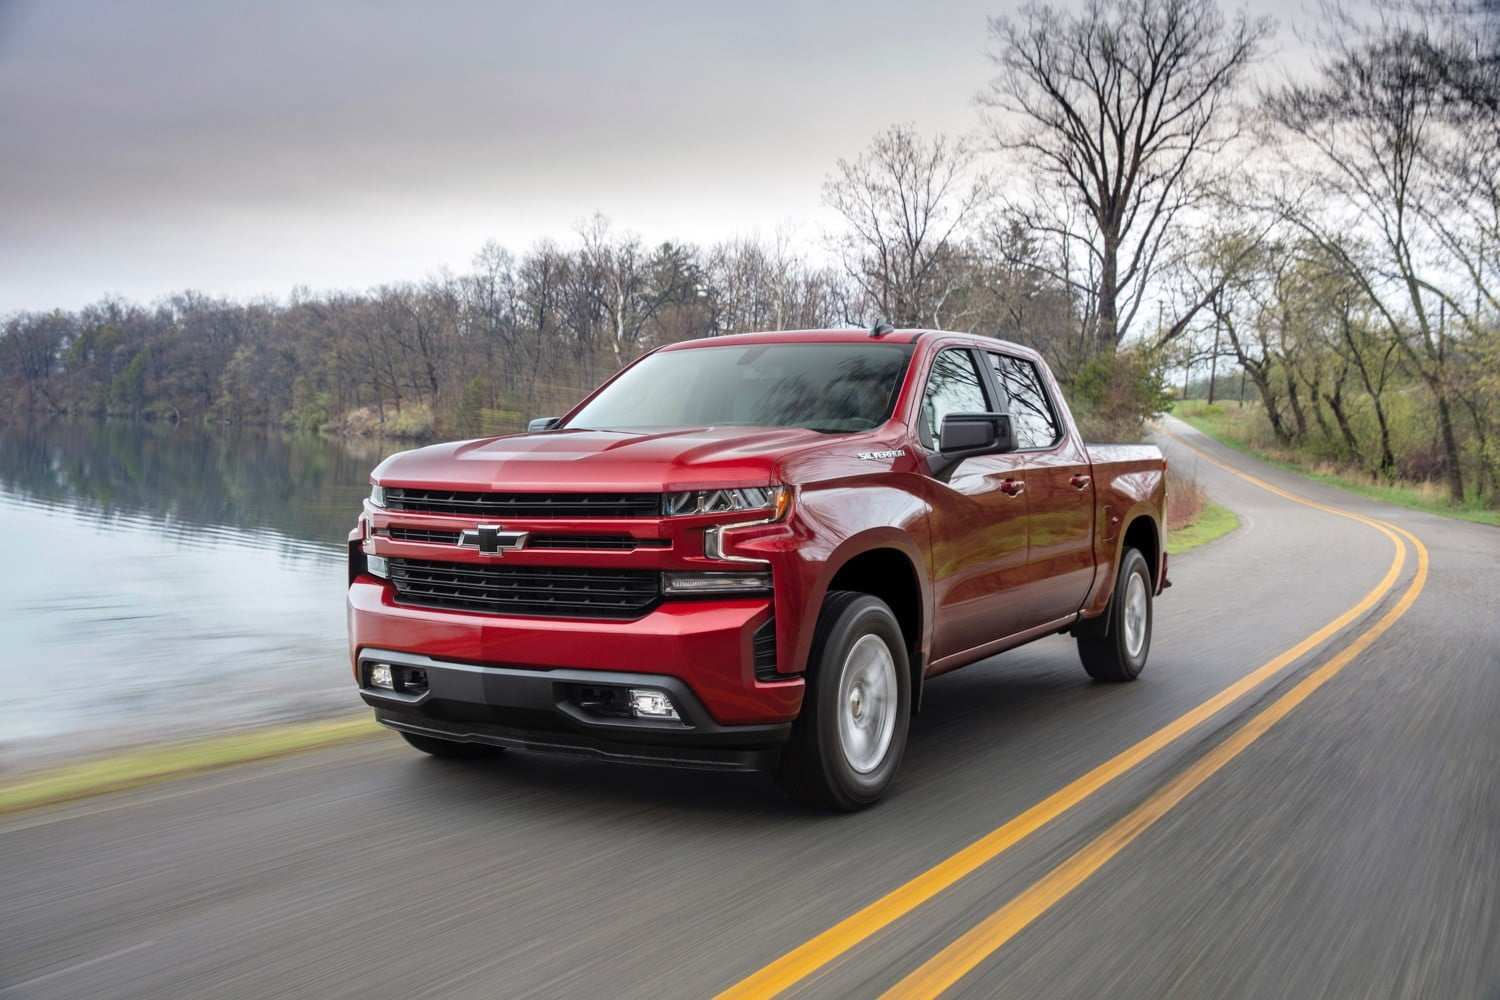 91 A 2019 Chevrolet Pickup Review